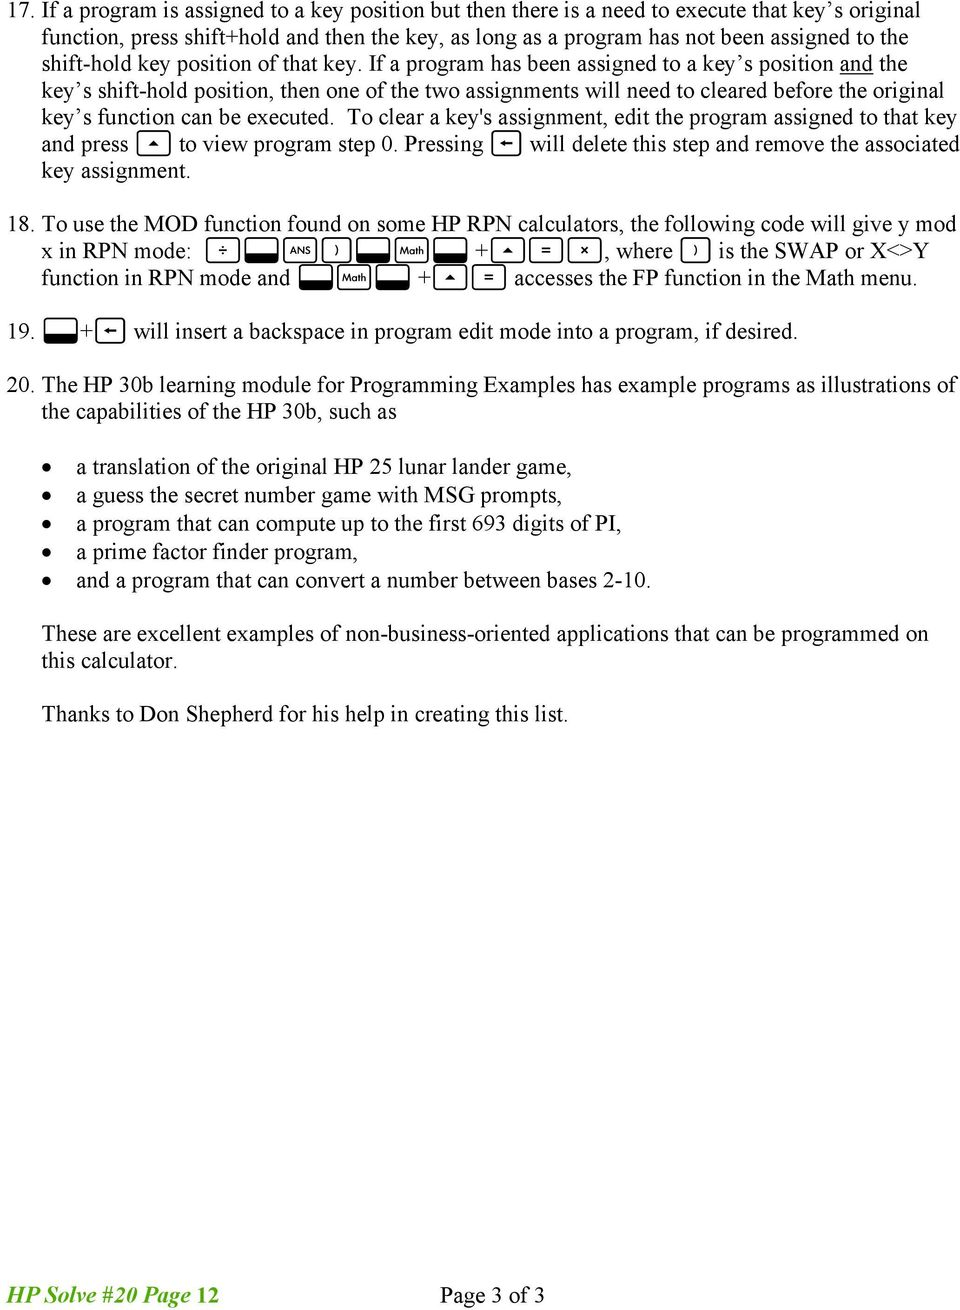 Hp solve calculating solutions powered by hp pdf if a program has been assigned to a key s position and the key s shift fandeluxe Choice Image